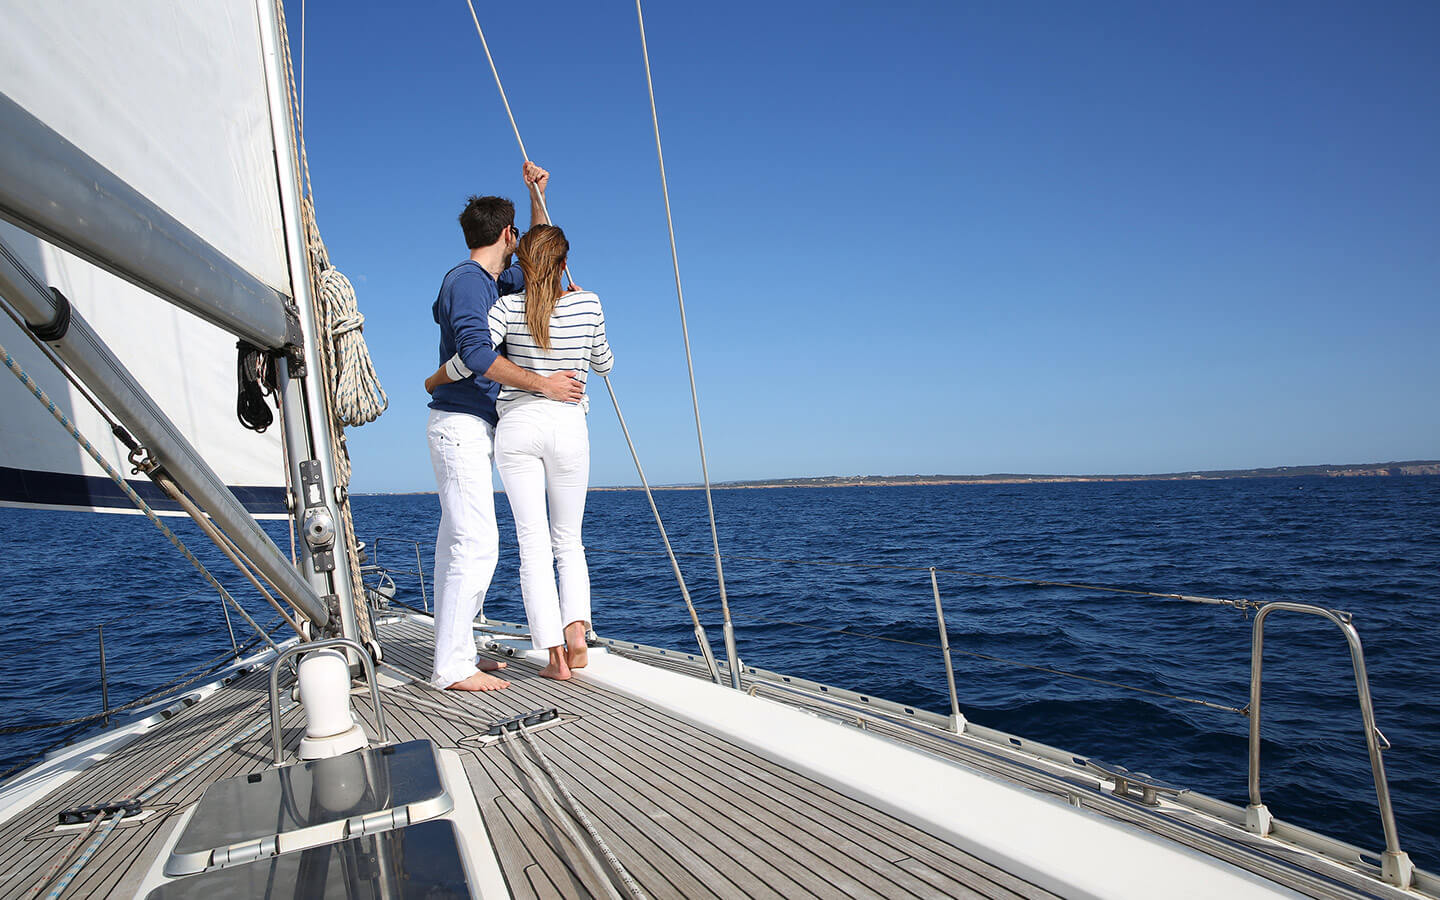 Couple on a sail boat